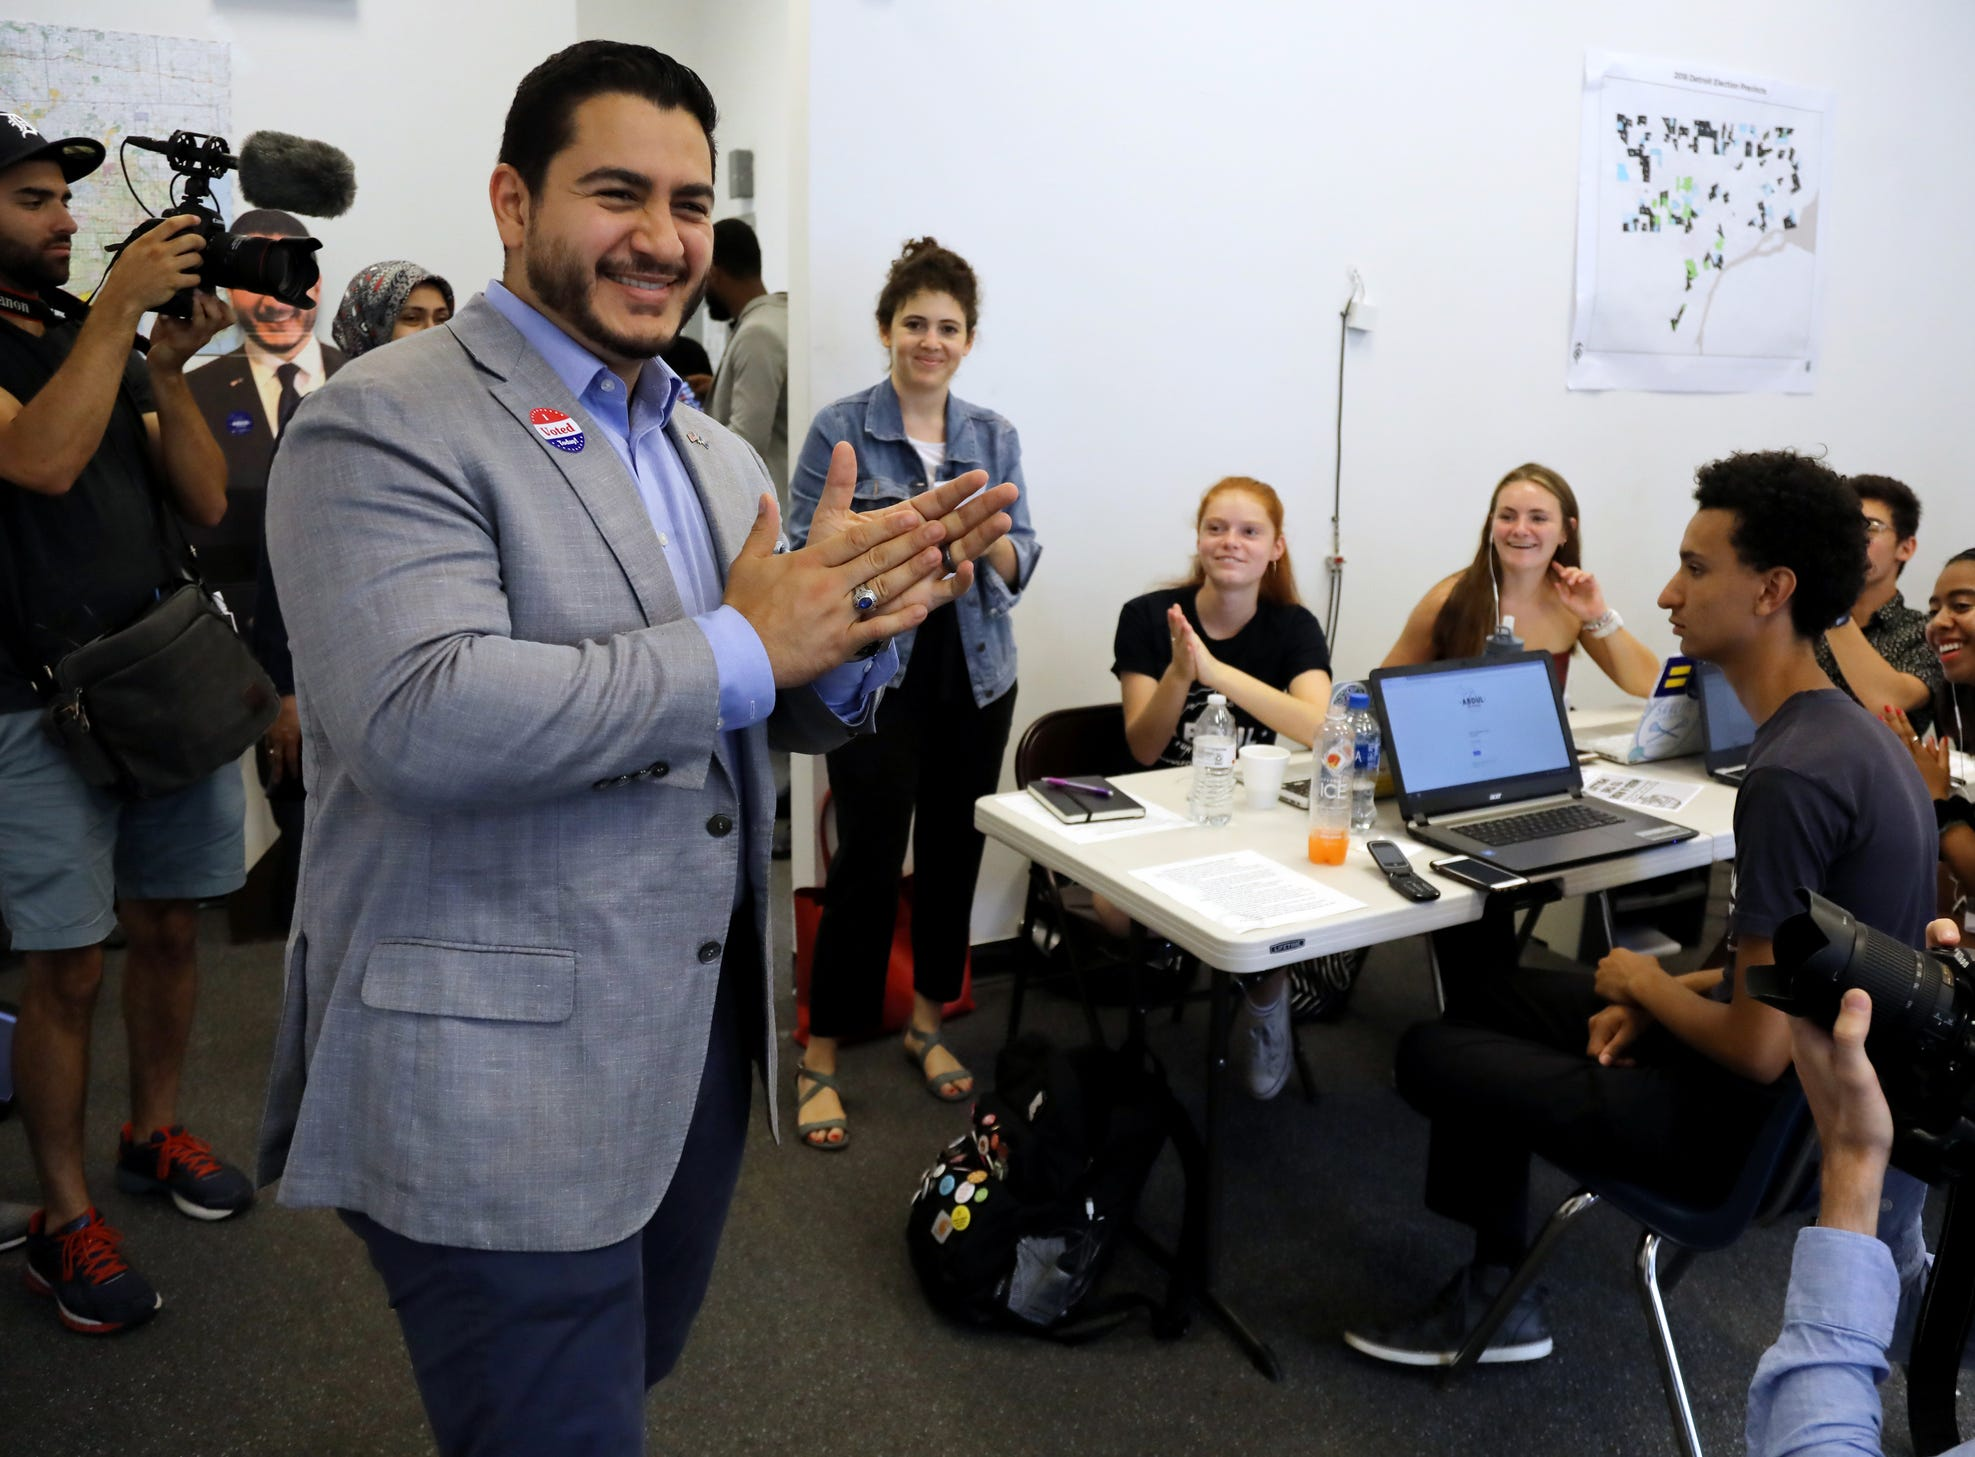 Democratic gubernatorial candidate Dr. Abdul El-Sayed visits his campaign headquarters in Detroit on Tuesday, Aug. 7, 2018.